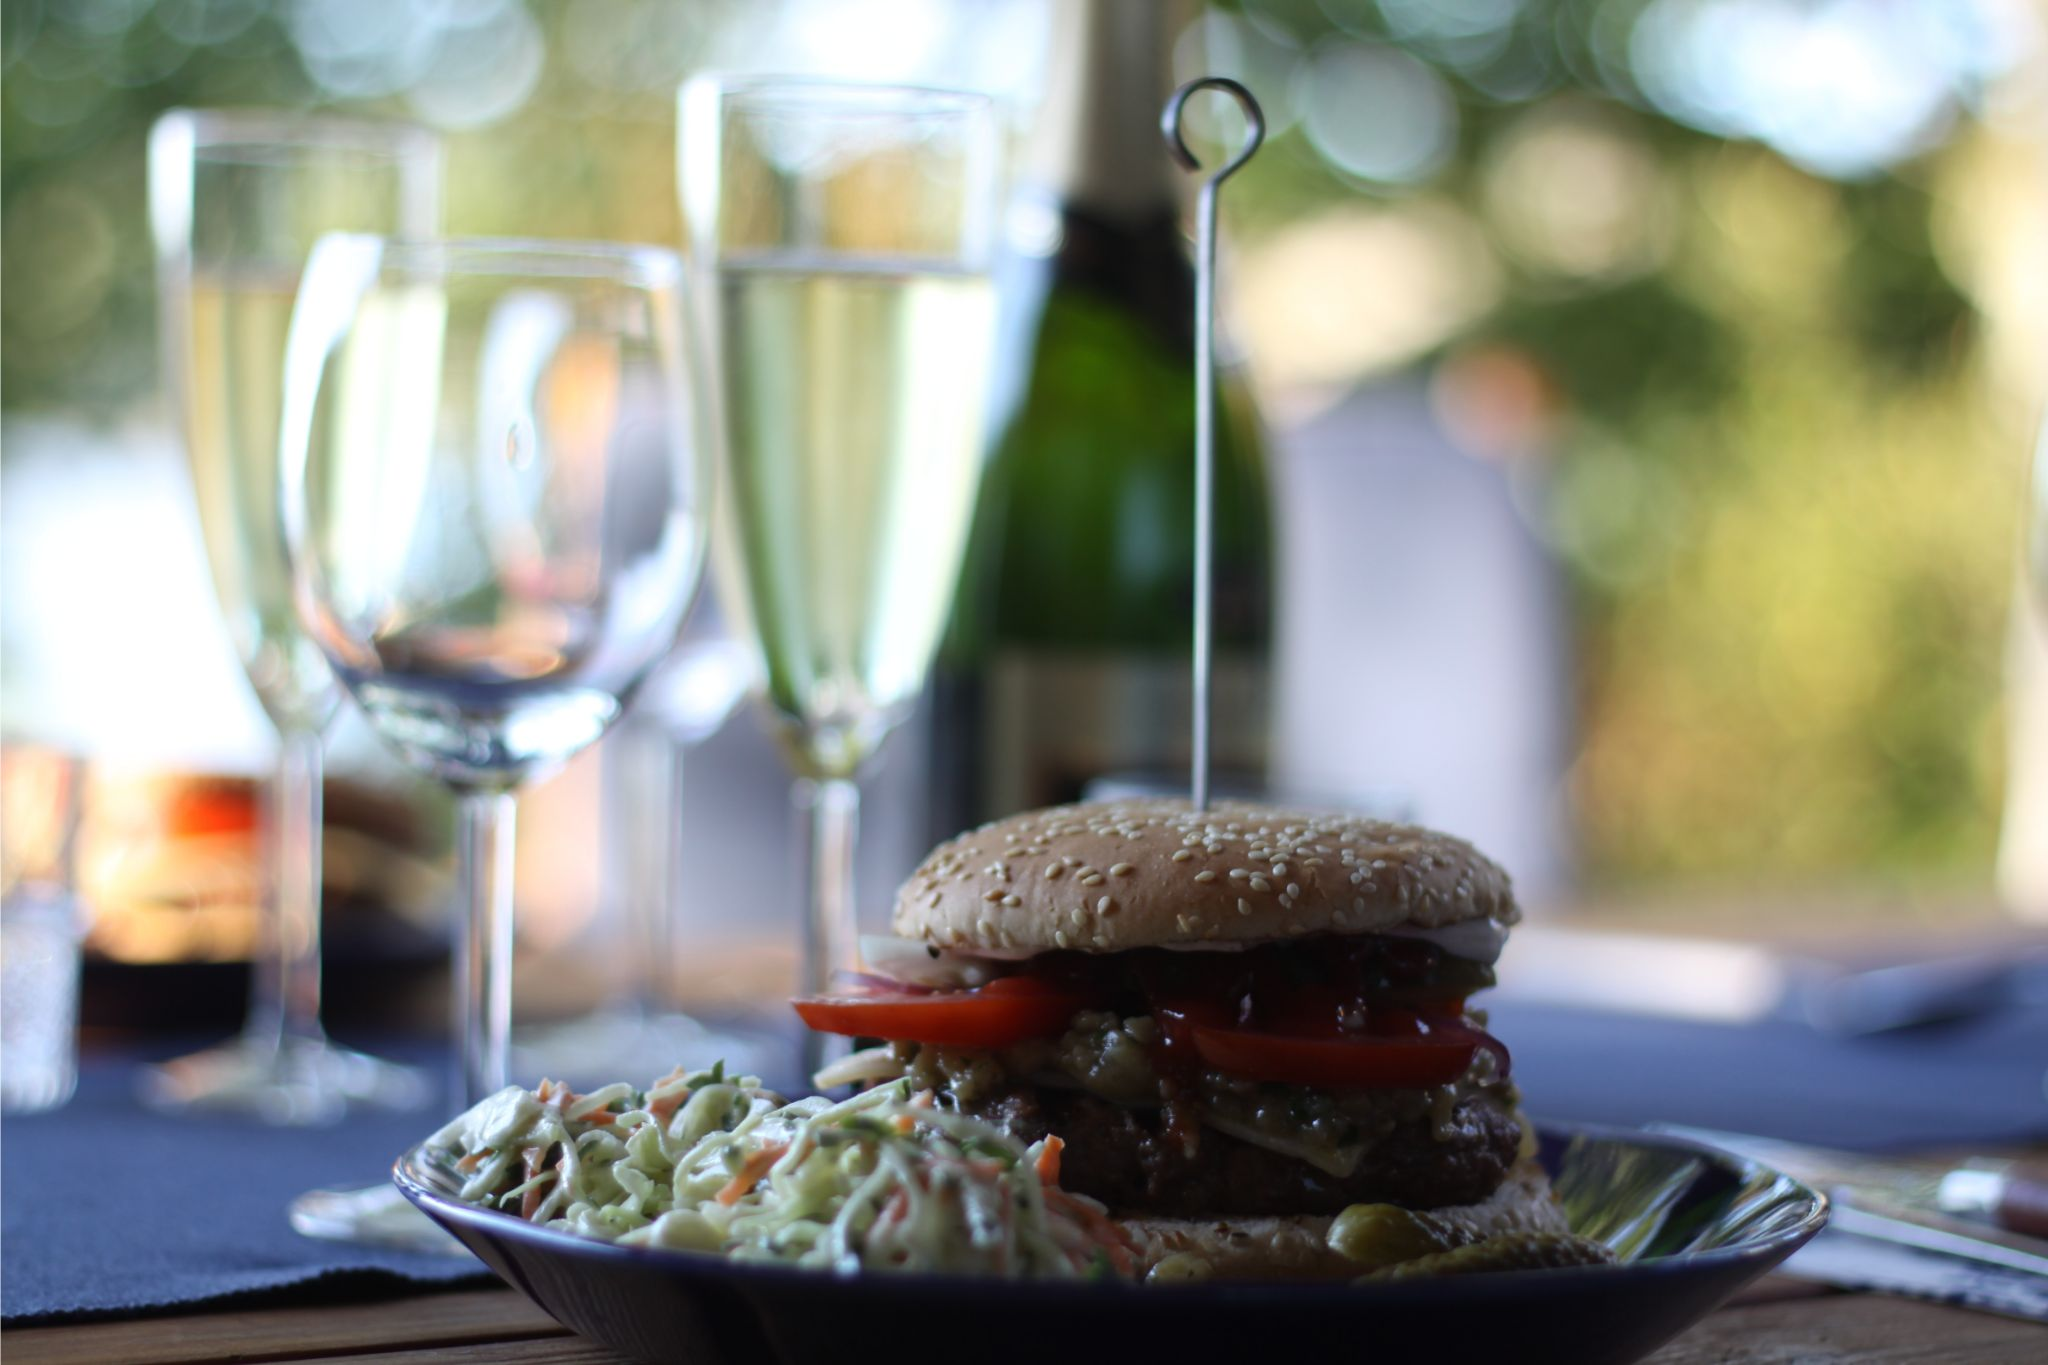 Homemade burgers and champagne